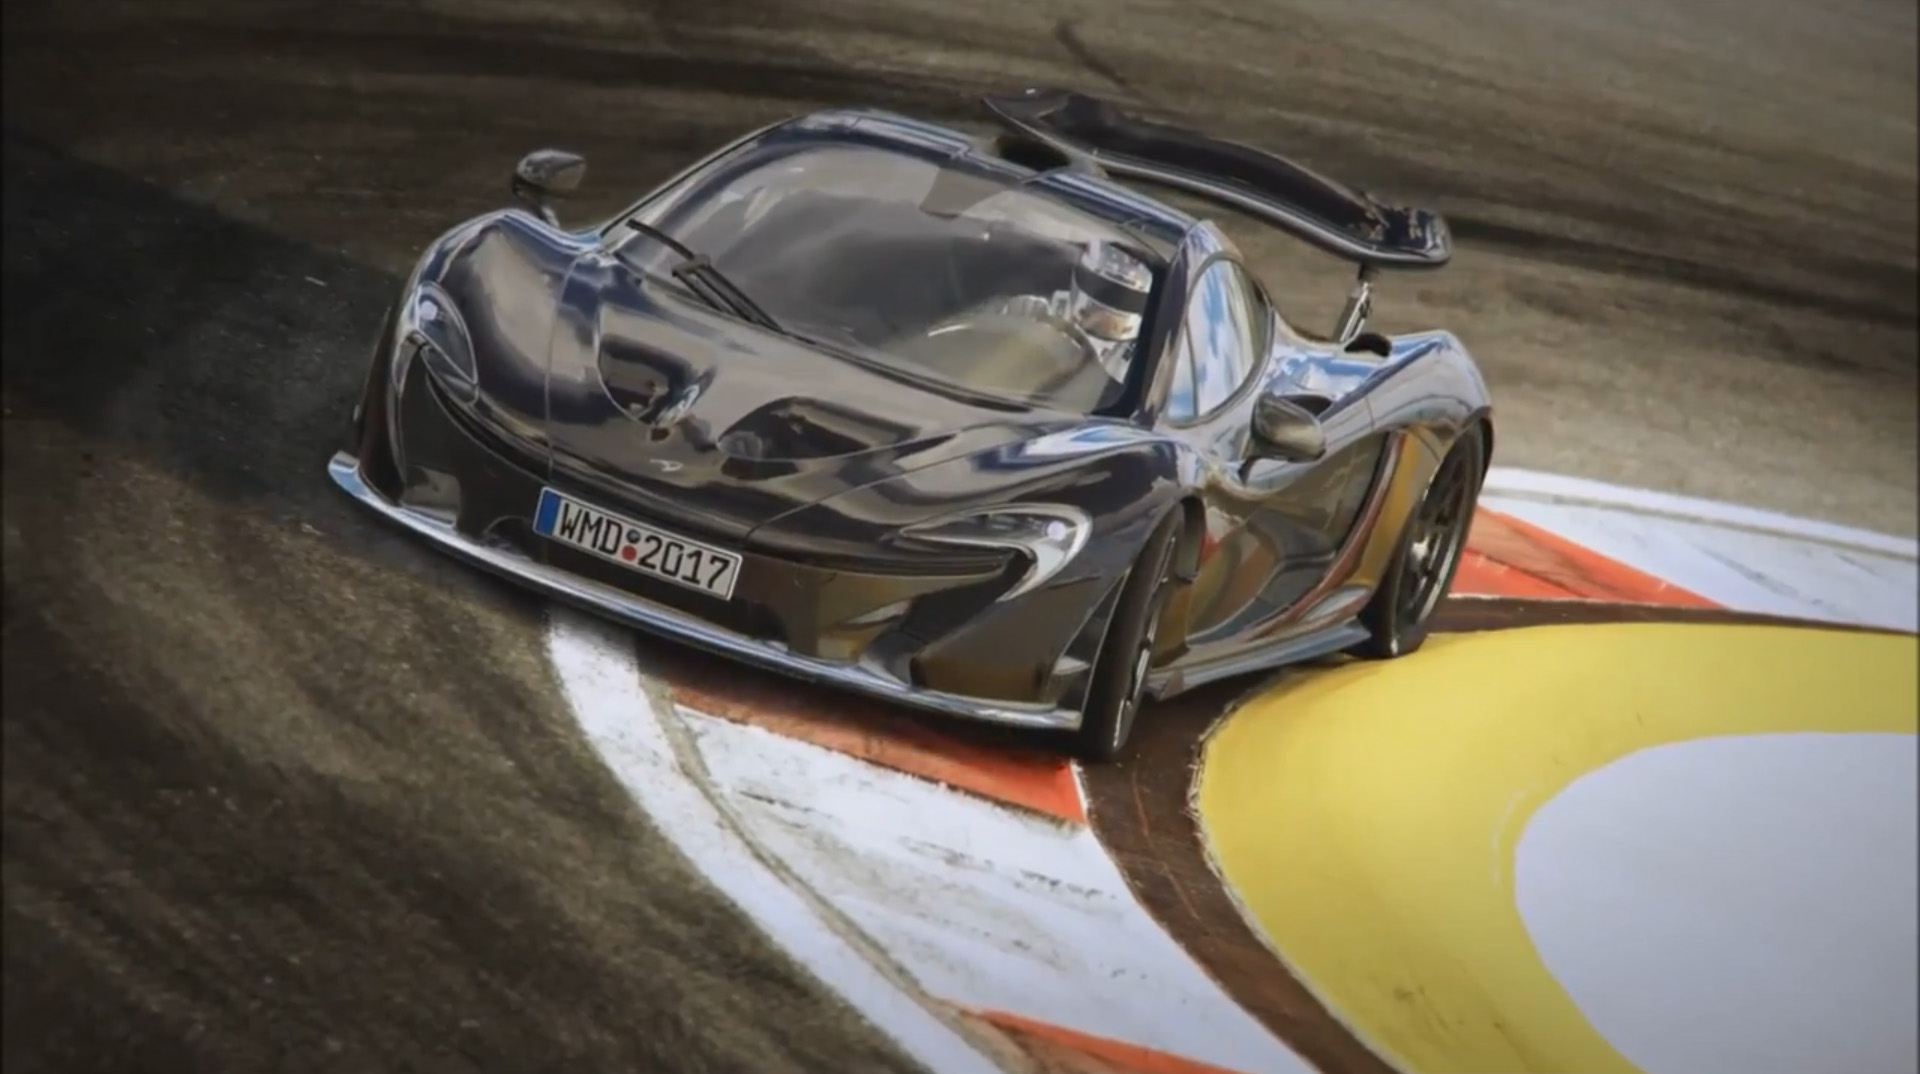 The first Project CARS 2 footage has leaked - and it looks incredible